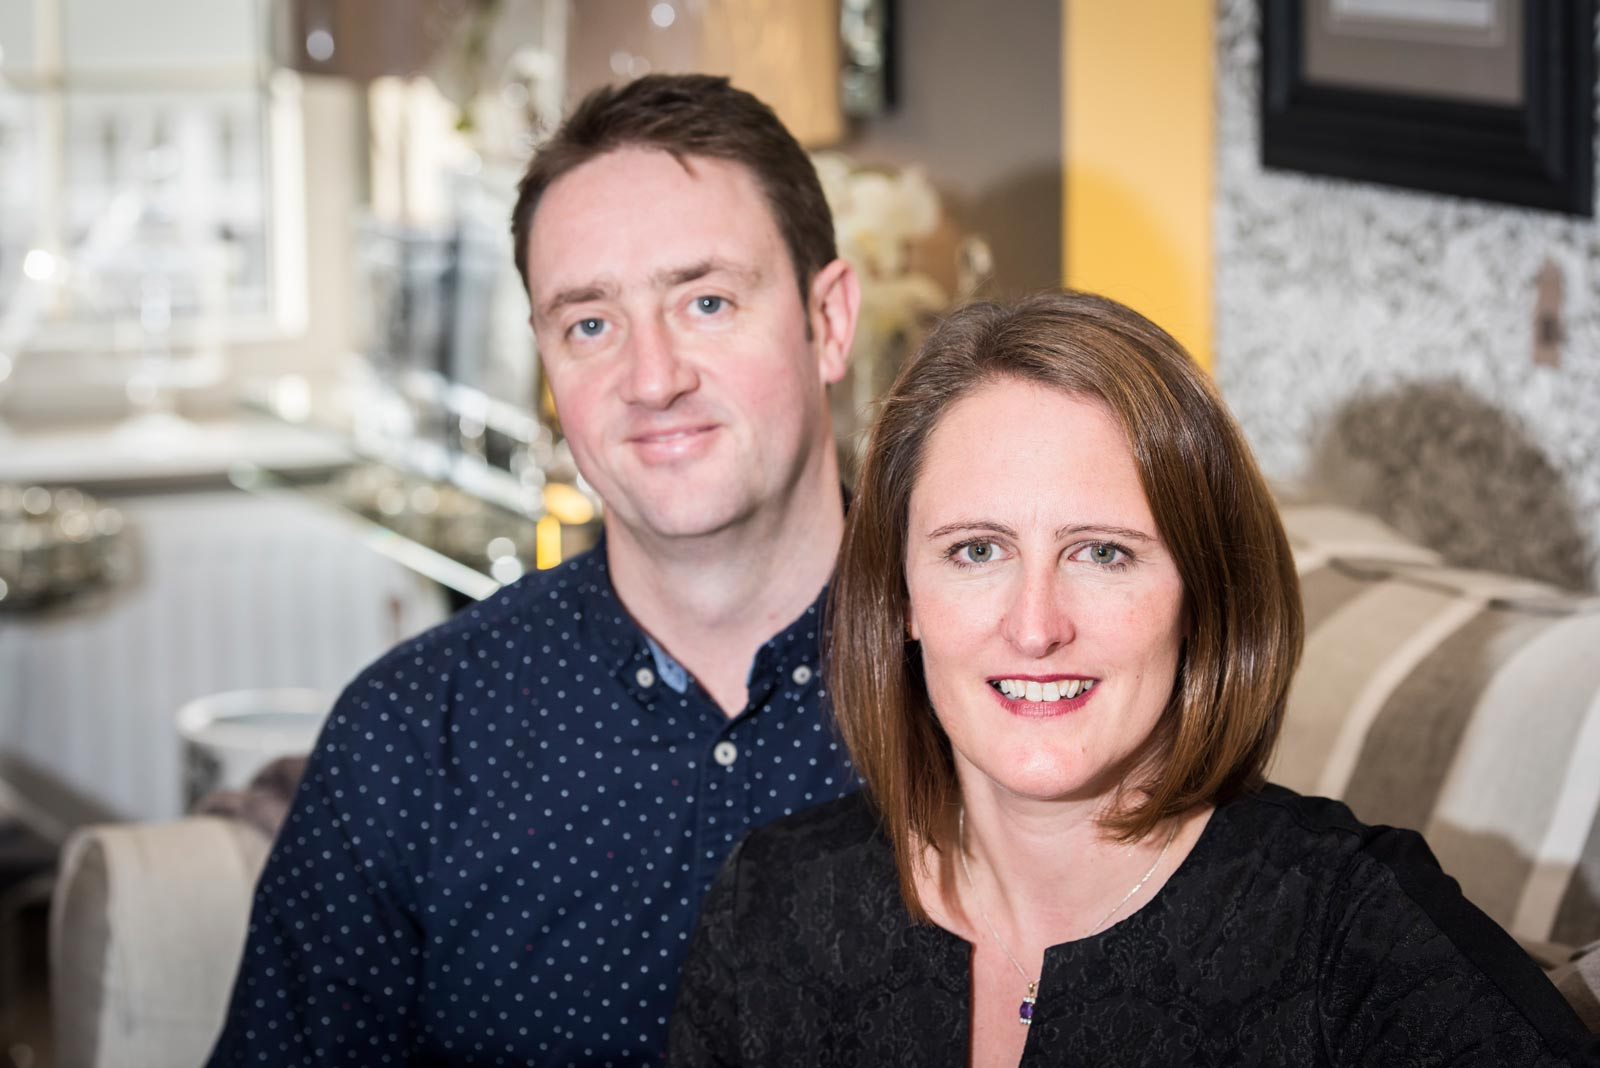 Glyn and Eleanor Goddard, owners of Furnish & Fettle